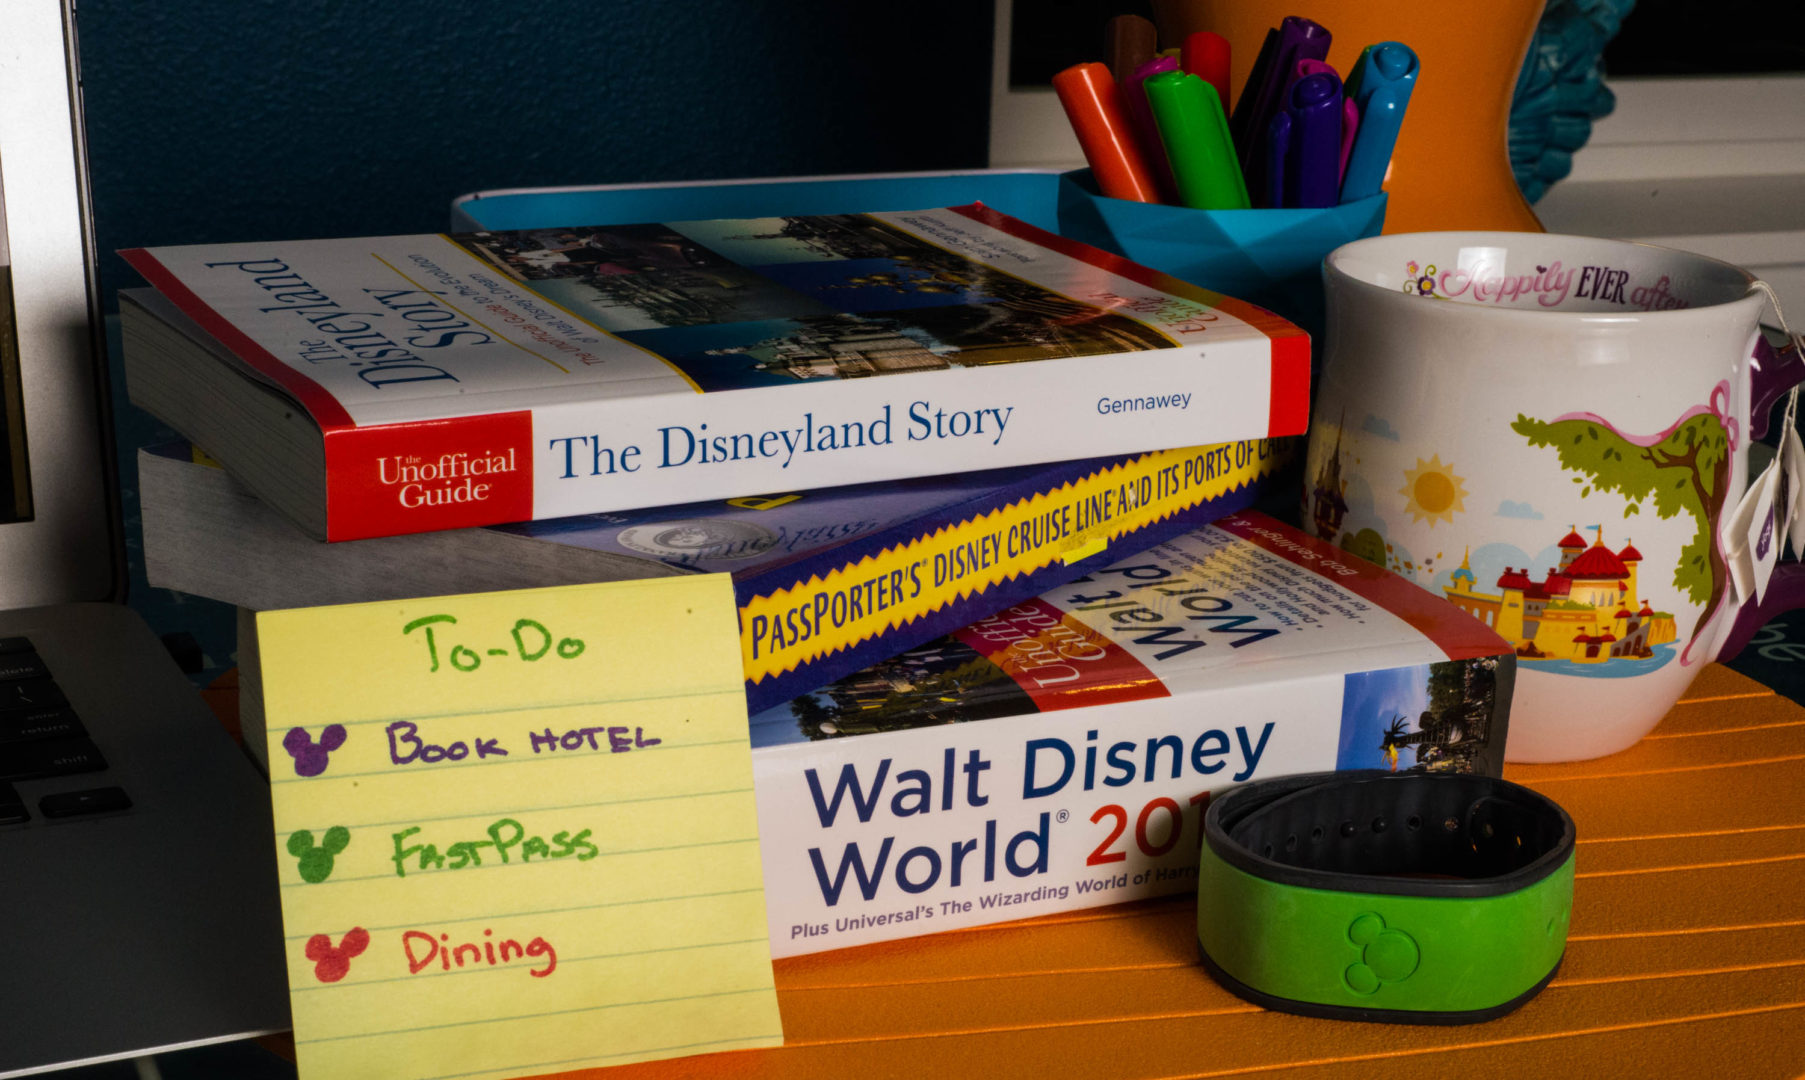 Disney Planning Guide Books in a Stack on a Desk - Unofficial Guide to Disney World